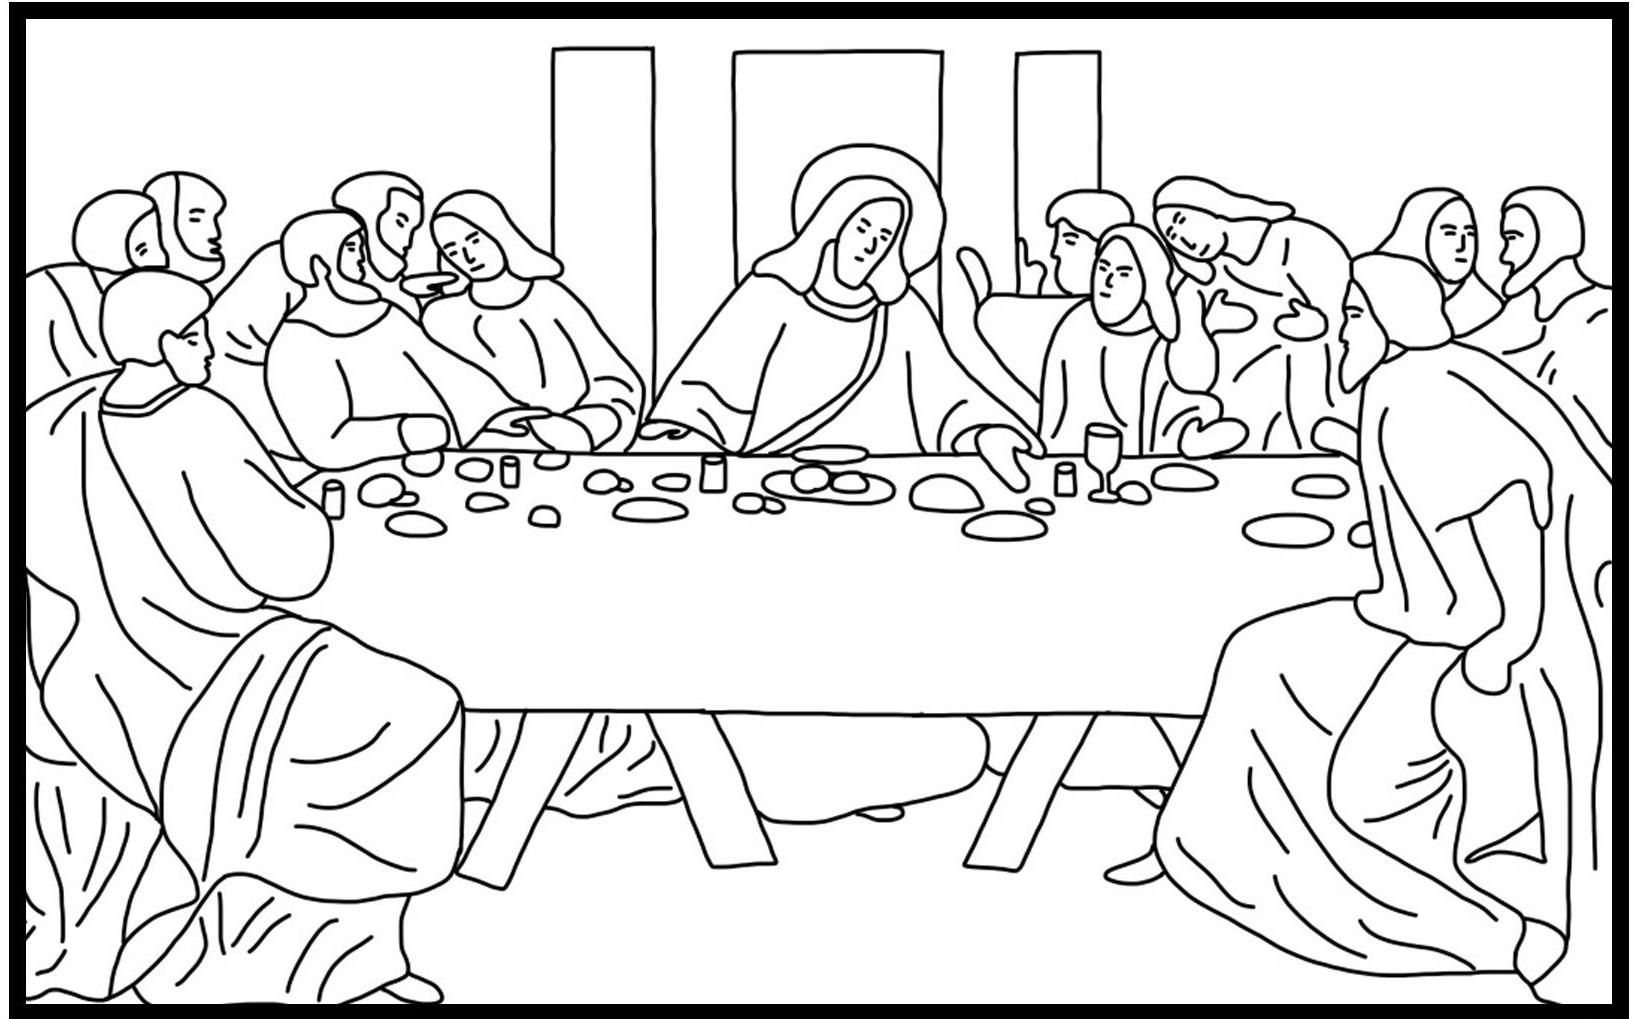 Lent Coloring Pages | COLORING | Coloring pages, Last supper ...